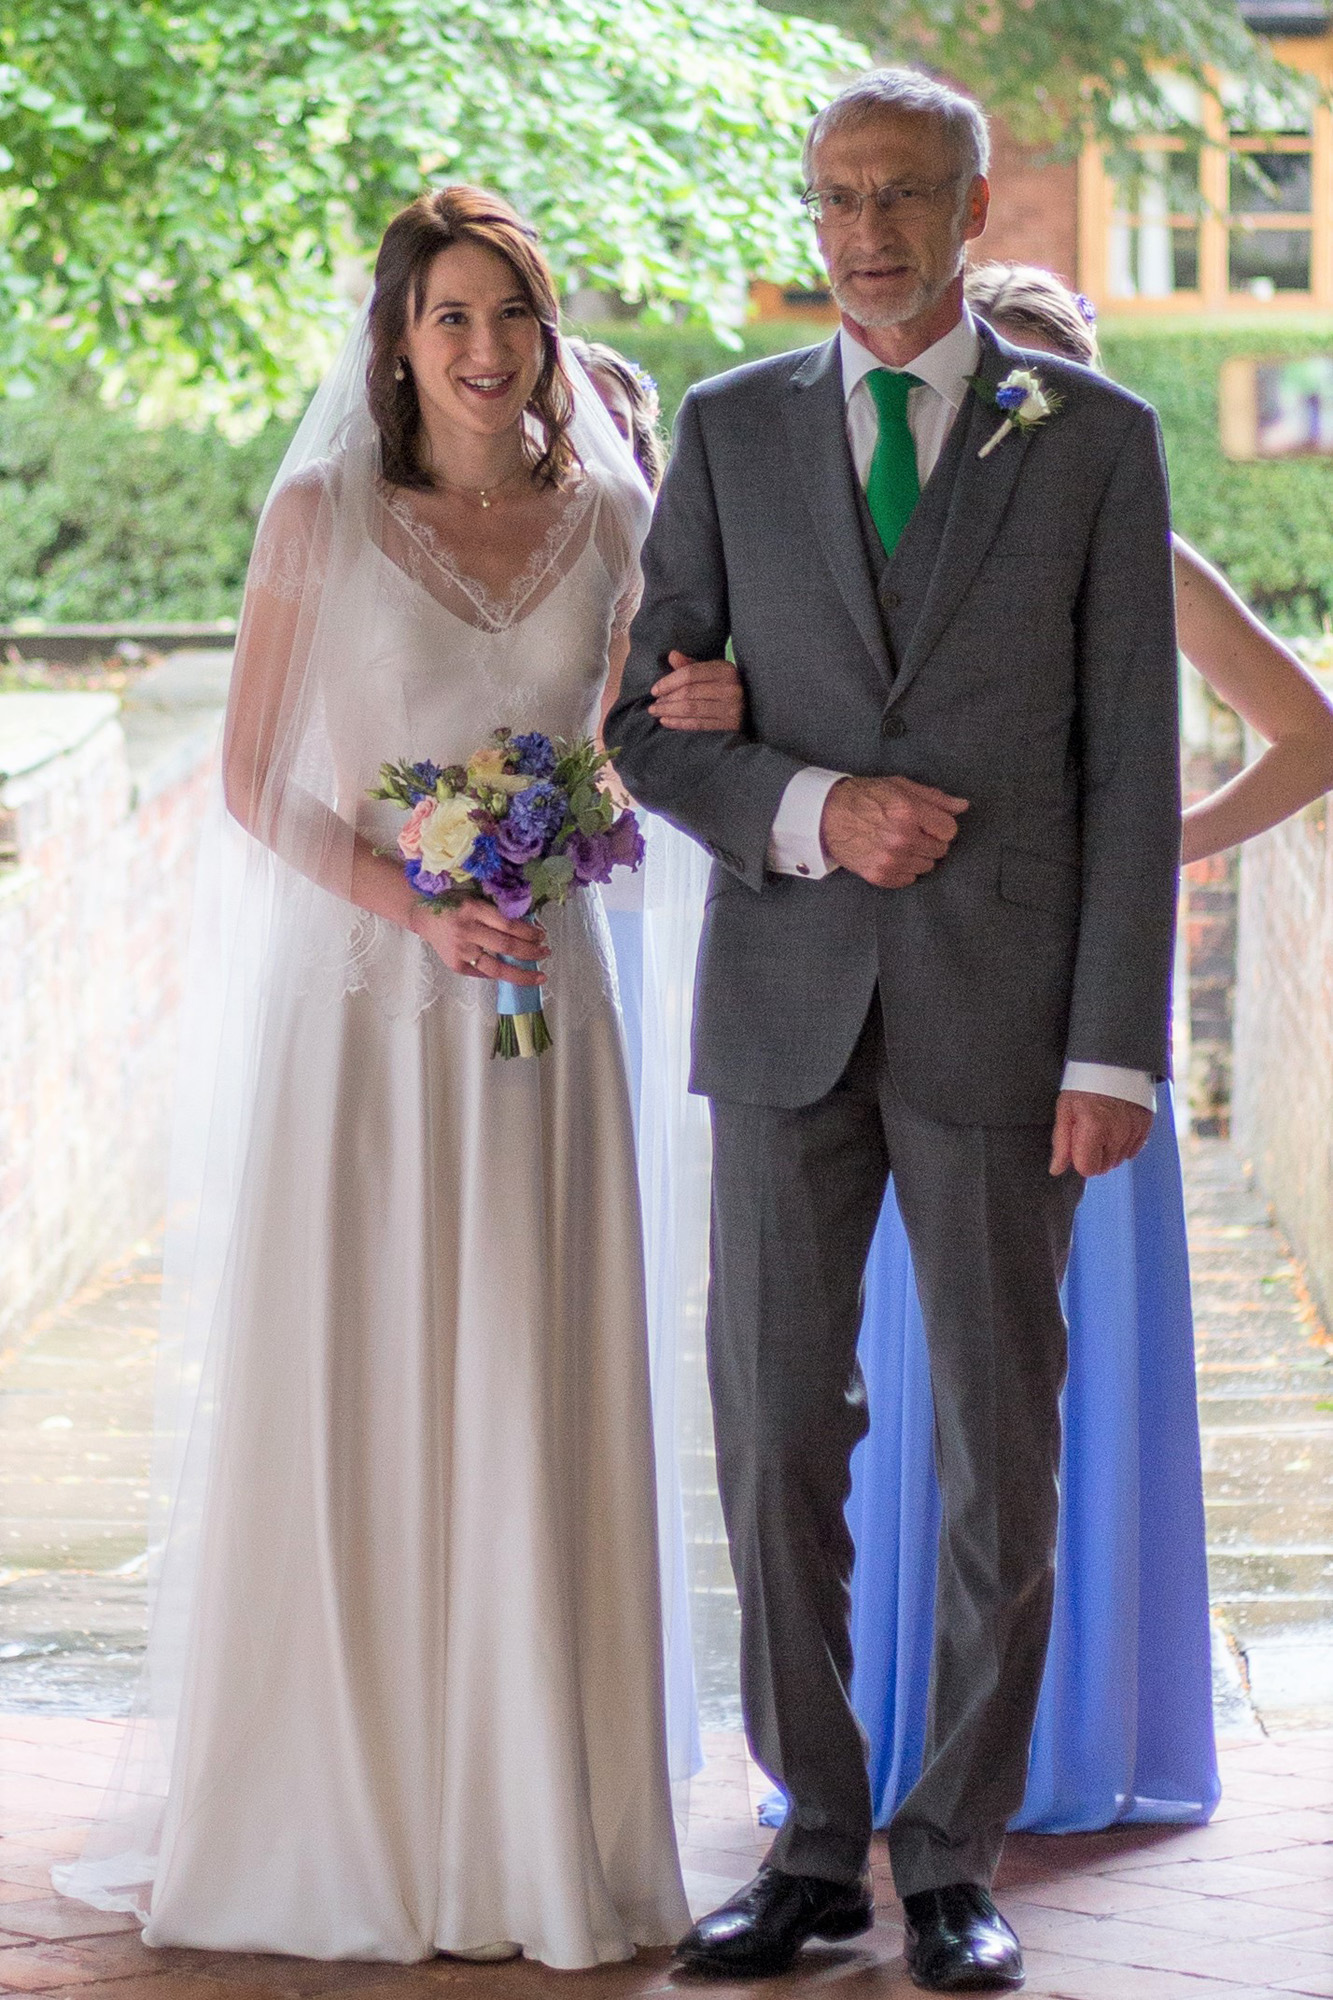 Paula-Lilac-Lace-Top-Bluebell-Flared-Silk-Dress-Church-Barn-Wedding-Kate-Beaumont-Sheffield-12.jpg